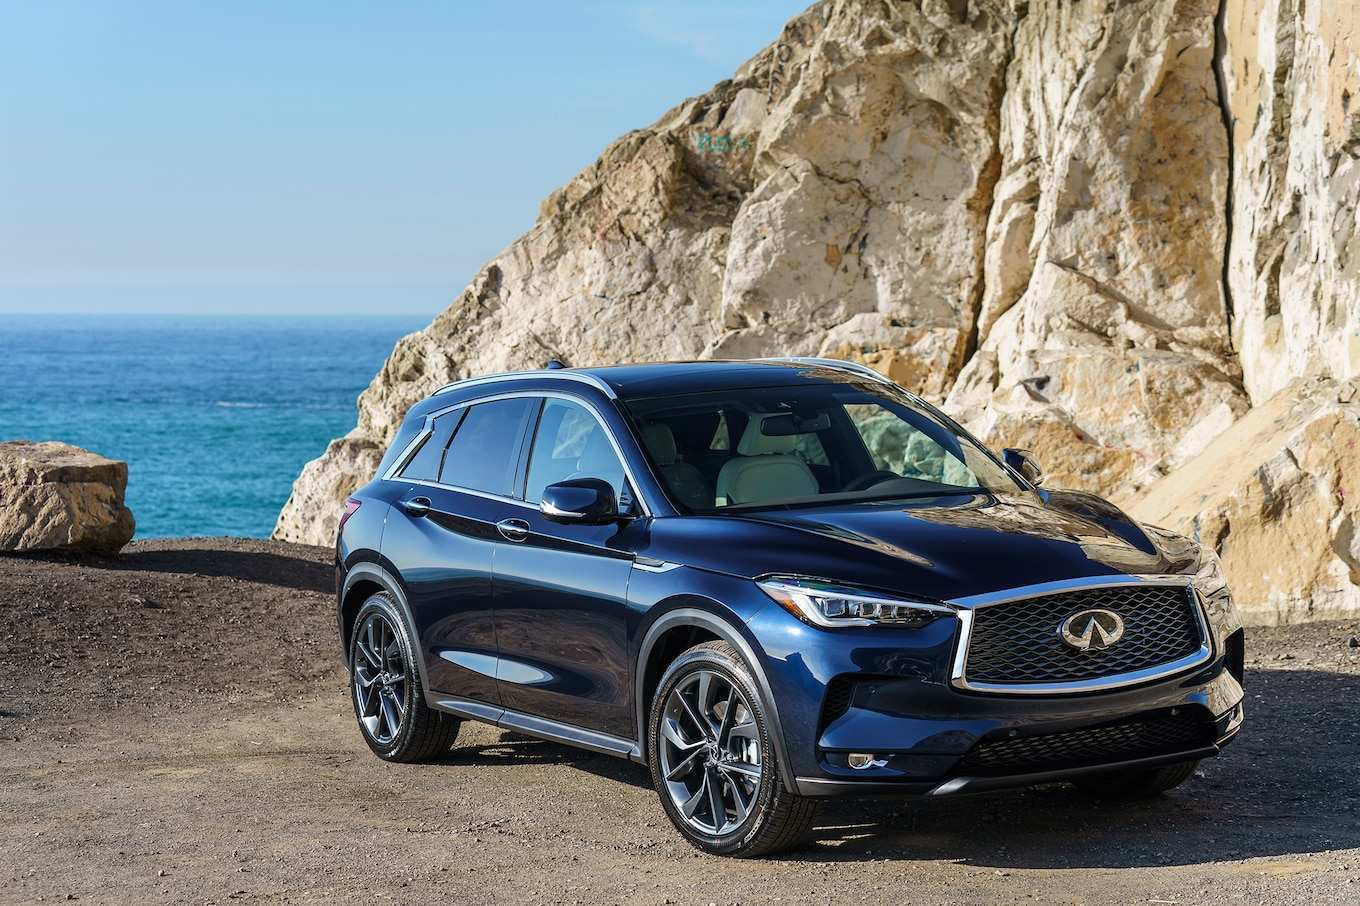 50 The Best 2019 Infiniti Gx50 Images